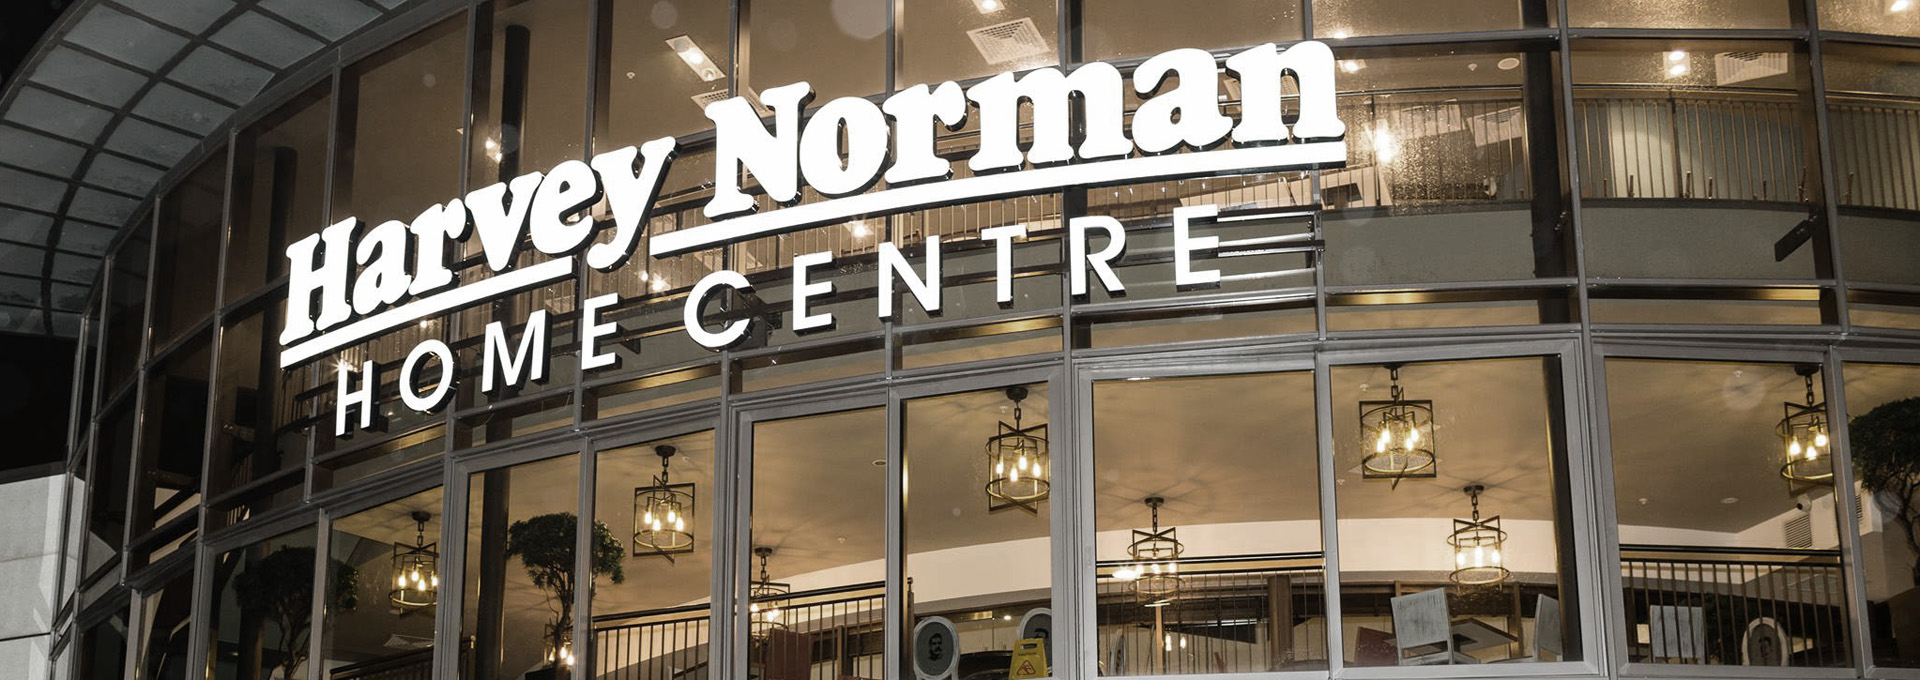 harvey norman home centre boucher road belfast harvey norman ireland. Black Bedroom Furniture Sets. Home Design Ideas